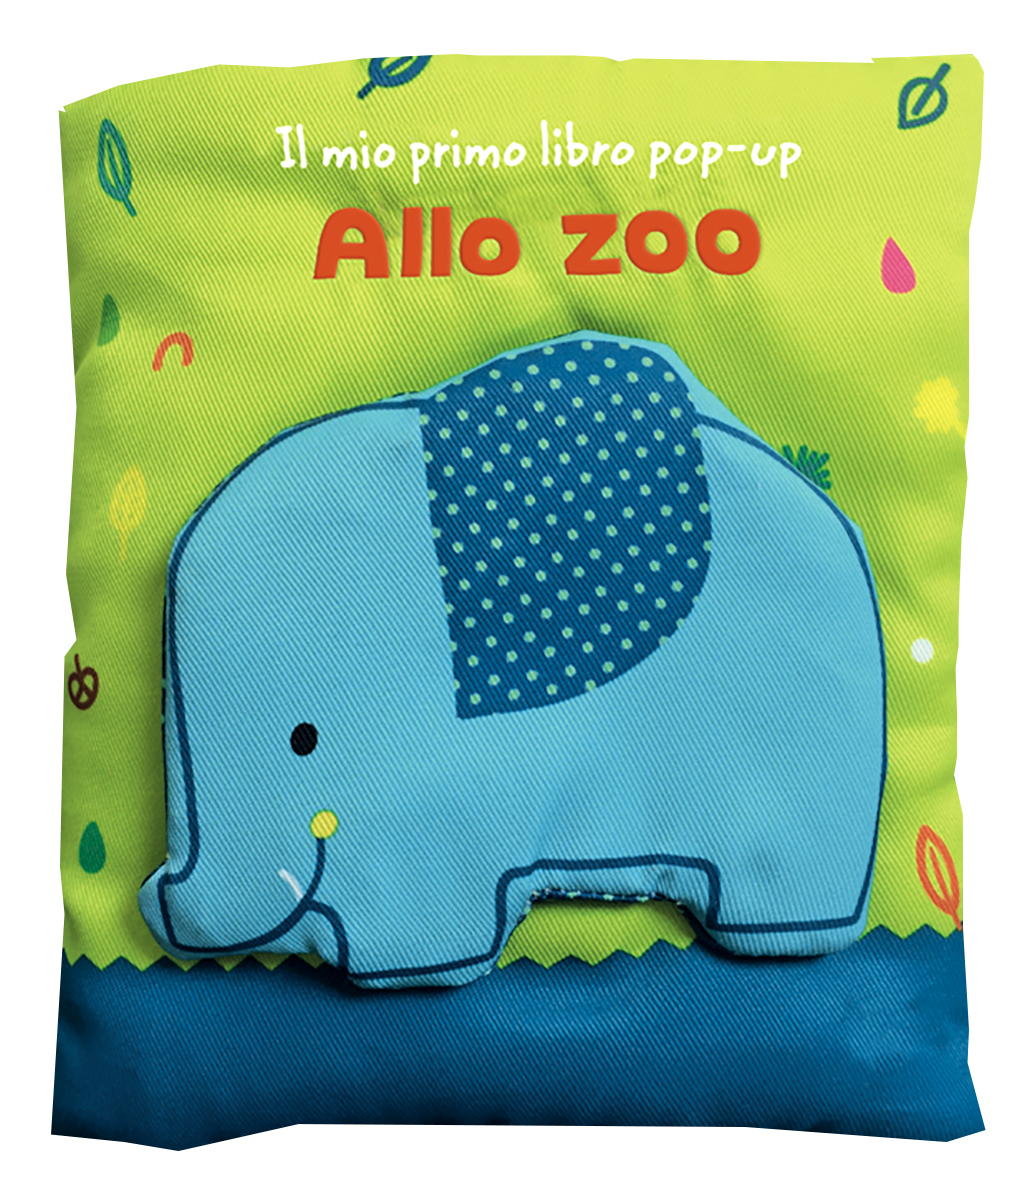 Il mio primo libro pop-up Allo Zoo